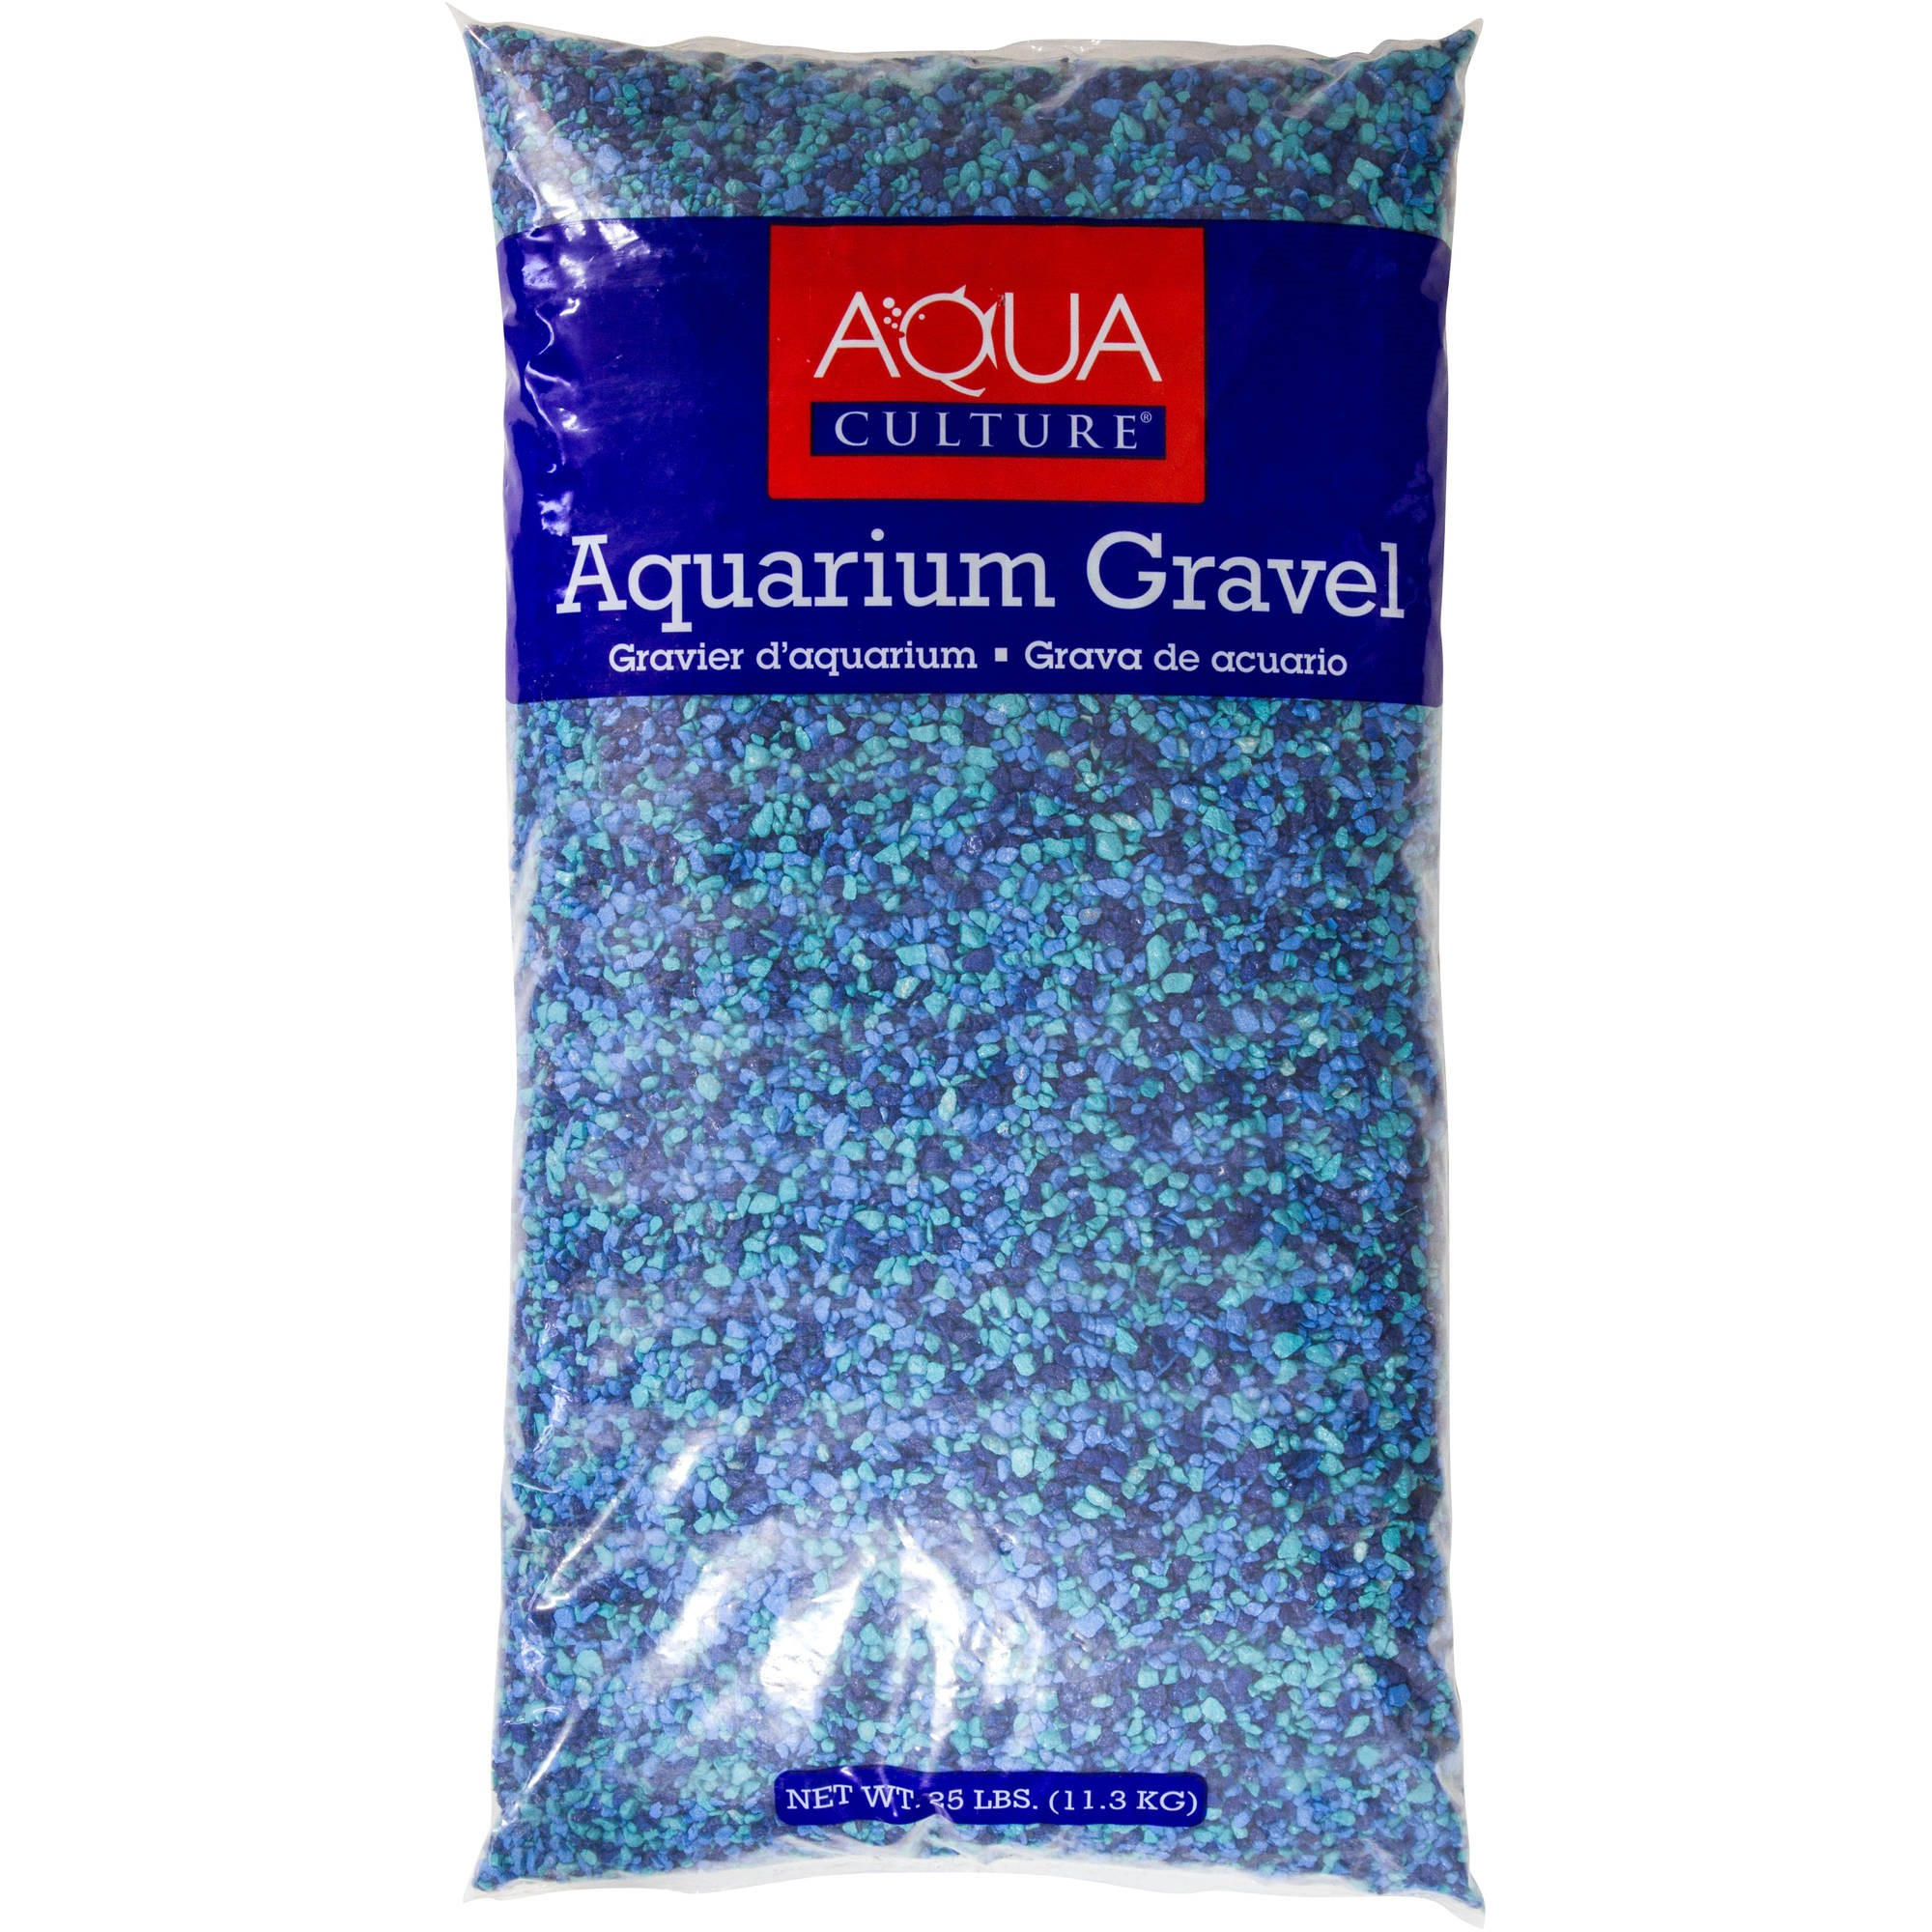 Aqua Culture Caribbean Aquarium Gravel, 25-Pound Bag